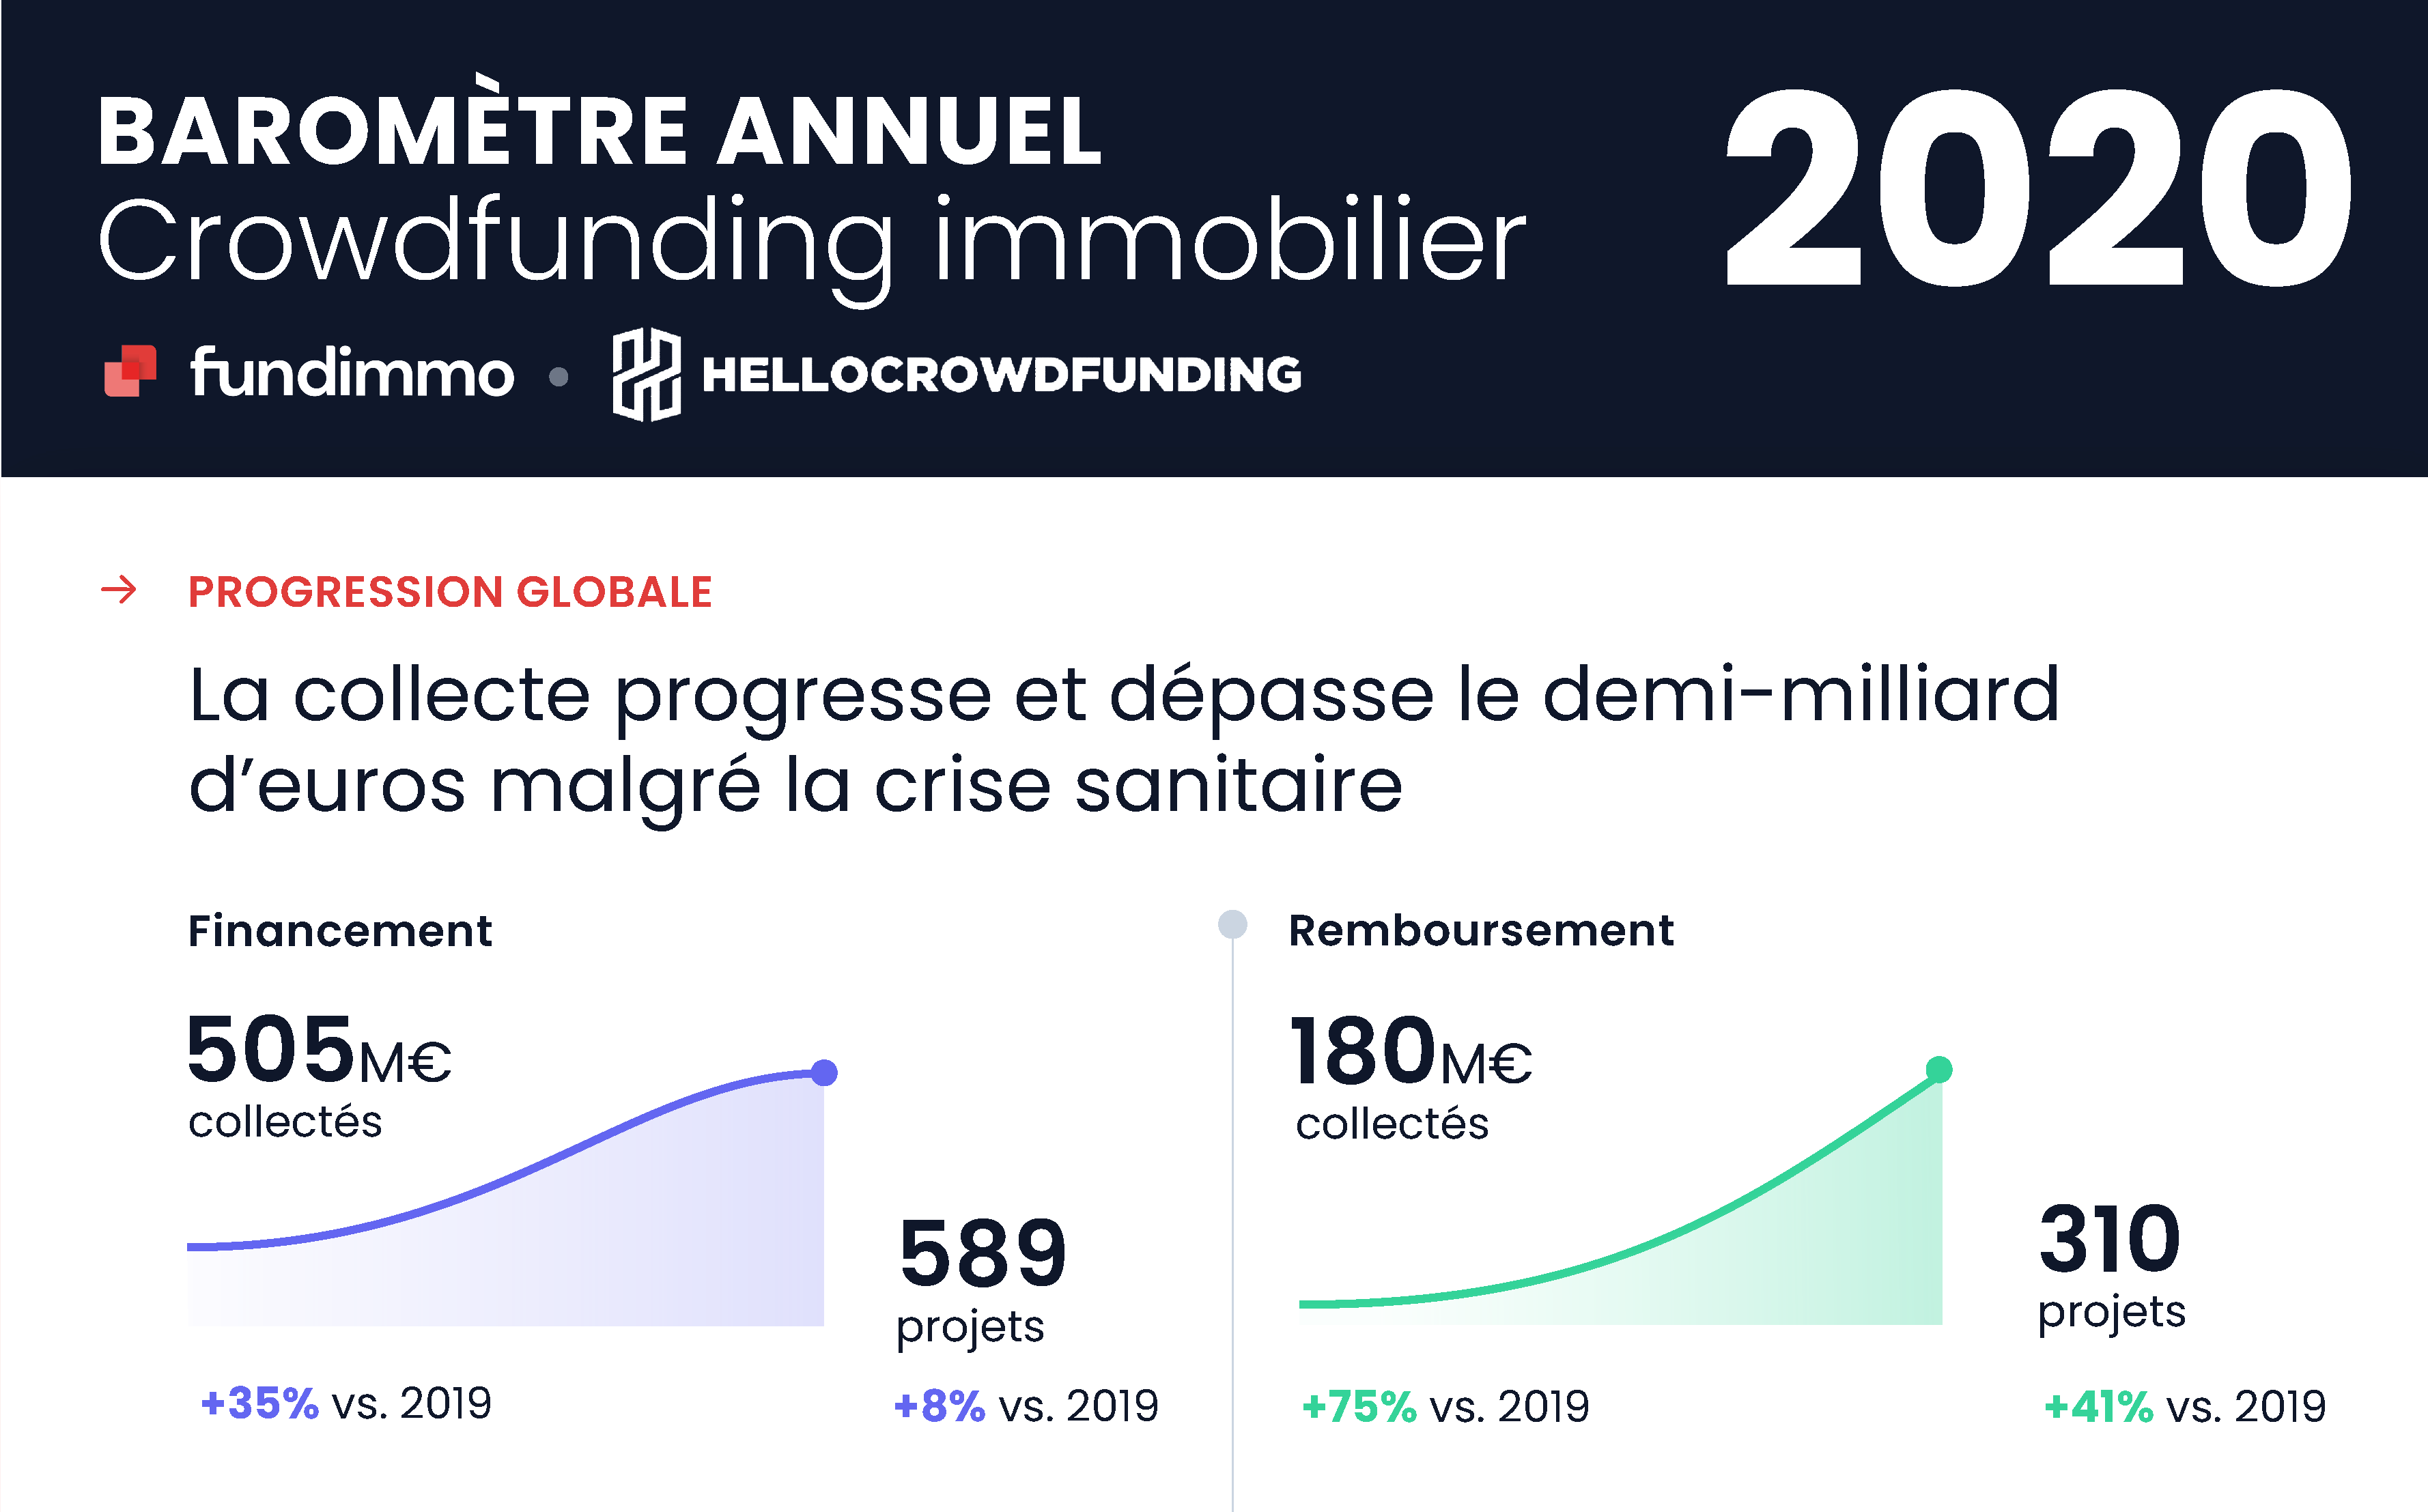 Baromètre 2020 crowdfunding immobilier